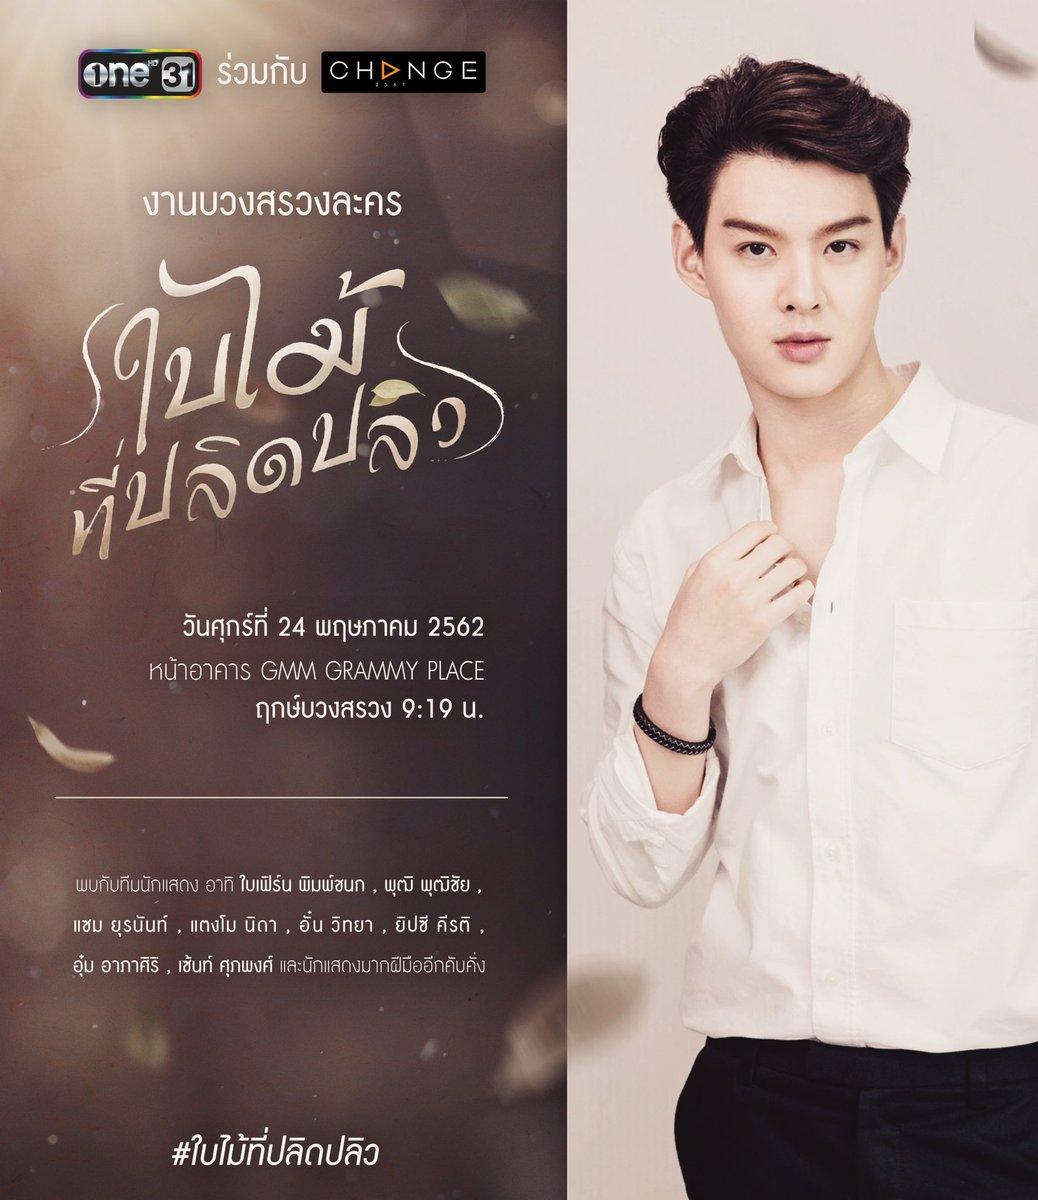 #MingEr   Let&#39;s trend   #ใบไม้ที่ปลิดปลิว  Trend start 9 AM(BKK time)   The Fallen leaf worship  24.05.2019  09:19AM  GMM Grammy Place   Please use photo in event, drama only or other cast. Don&#39;t use photo not relate to drama. Thank you  #Saint_sup<br>http://pic.twitter.com/ueUvU1KINs